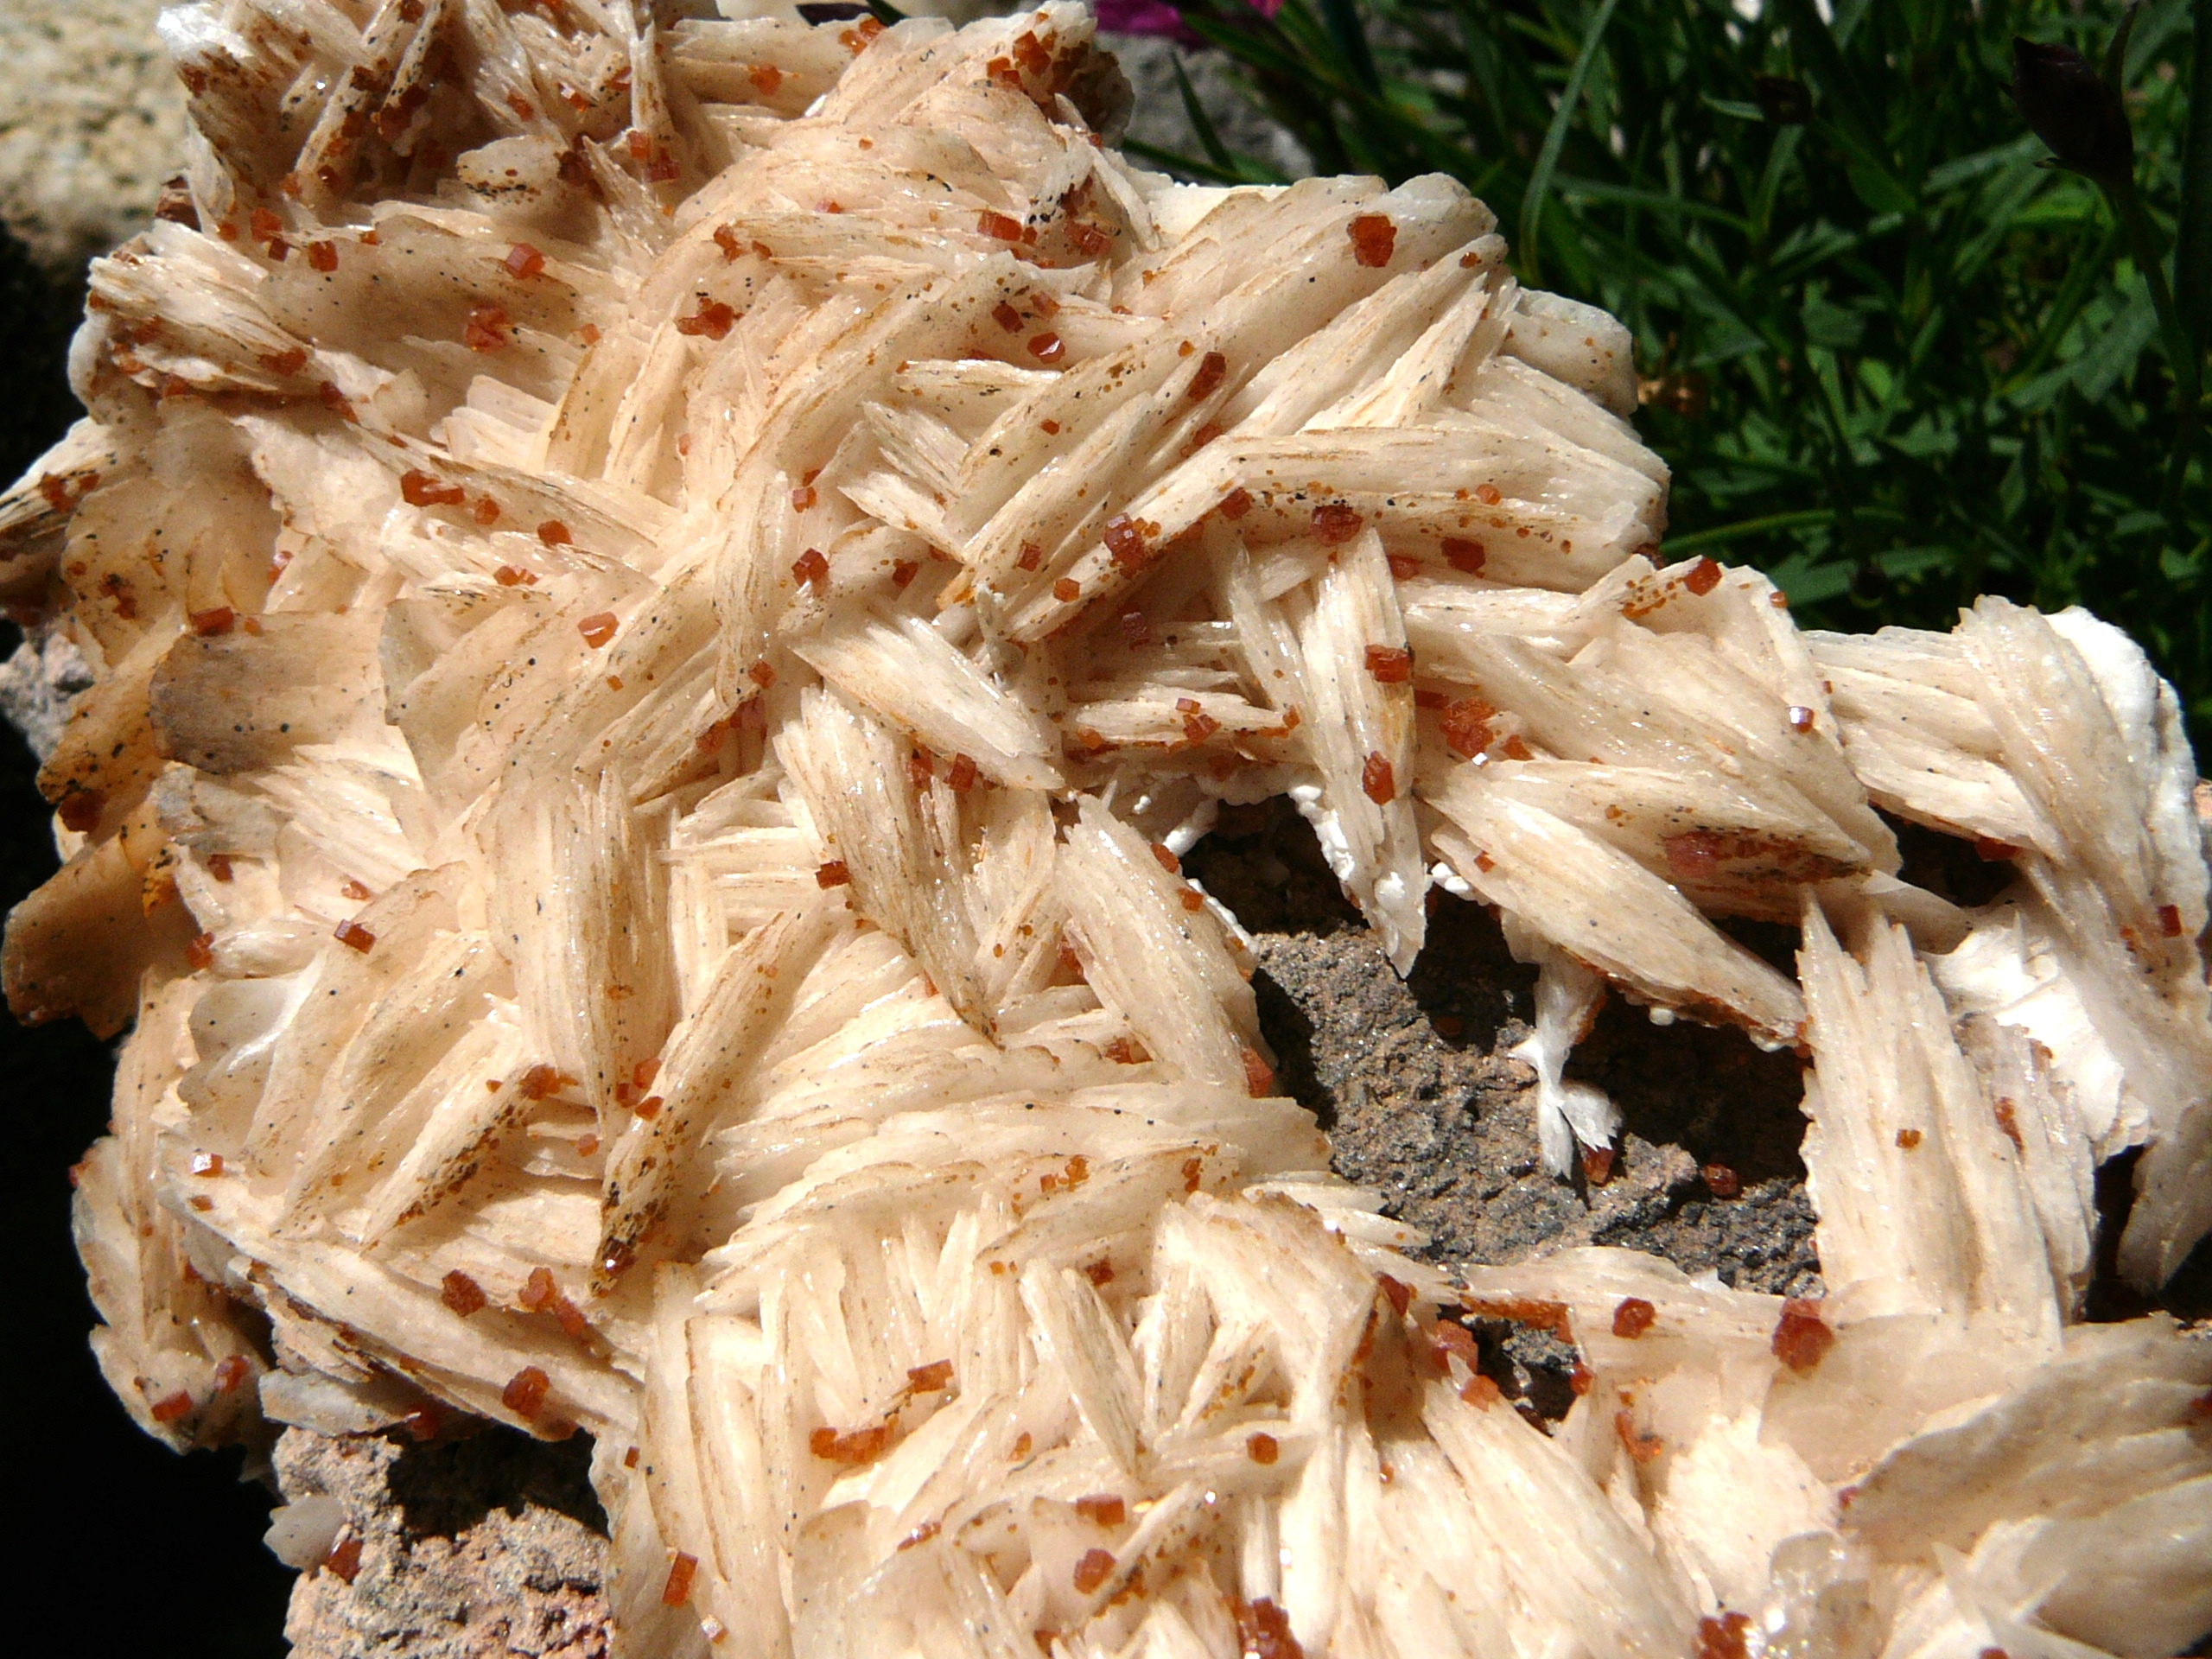 Barite with vanadinite crystals